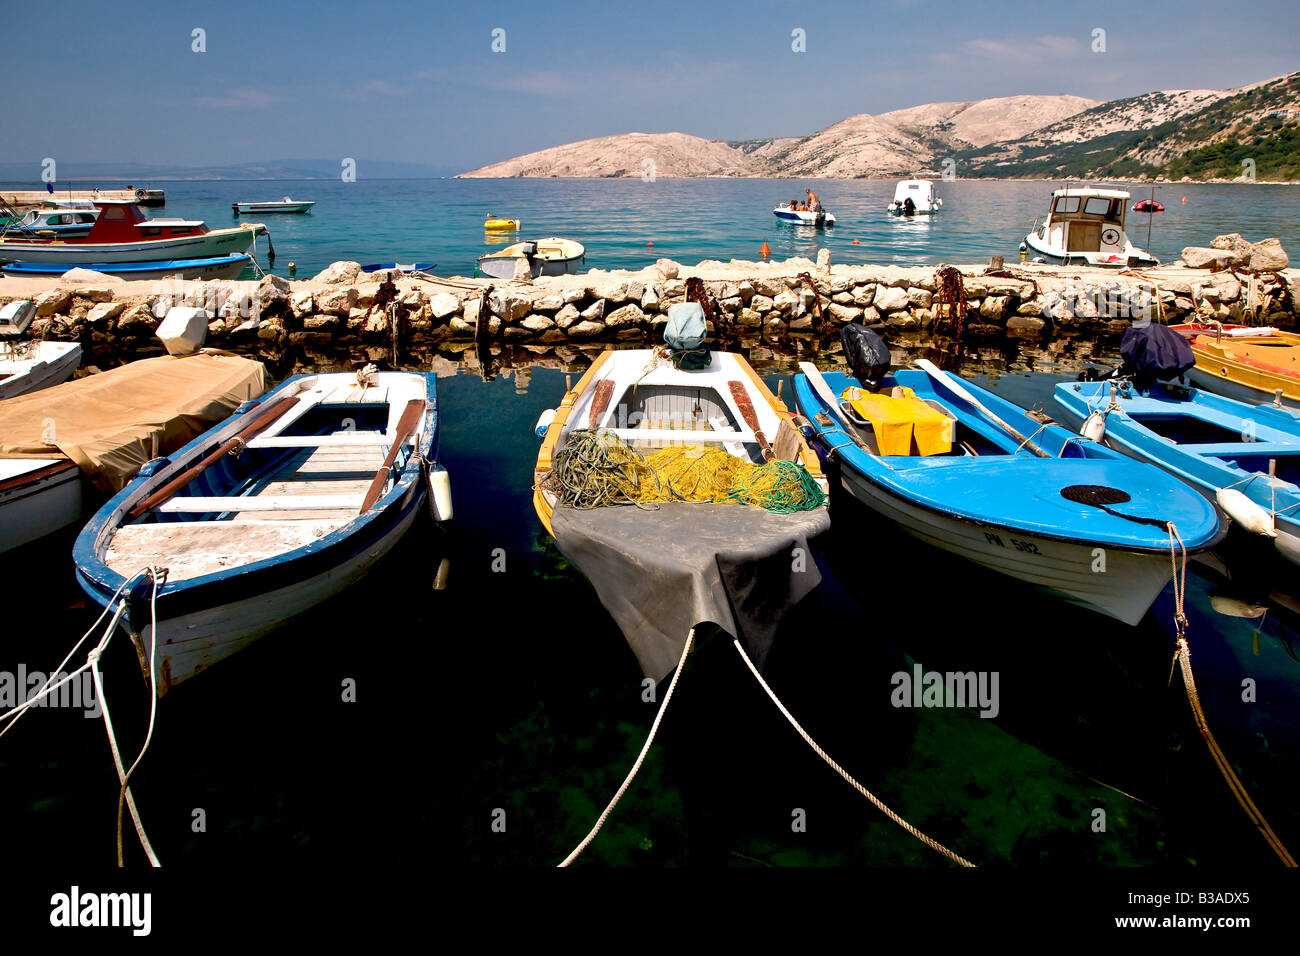 Fishing boats in Stara Baska harbour at the isle of Krk in Croatia - Stock Image